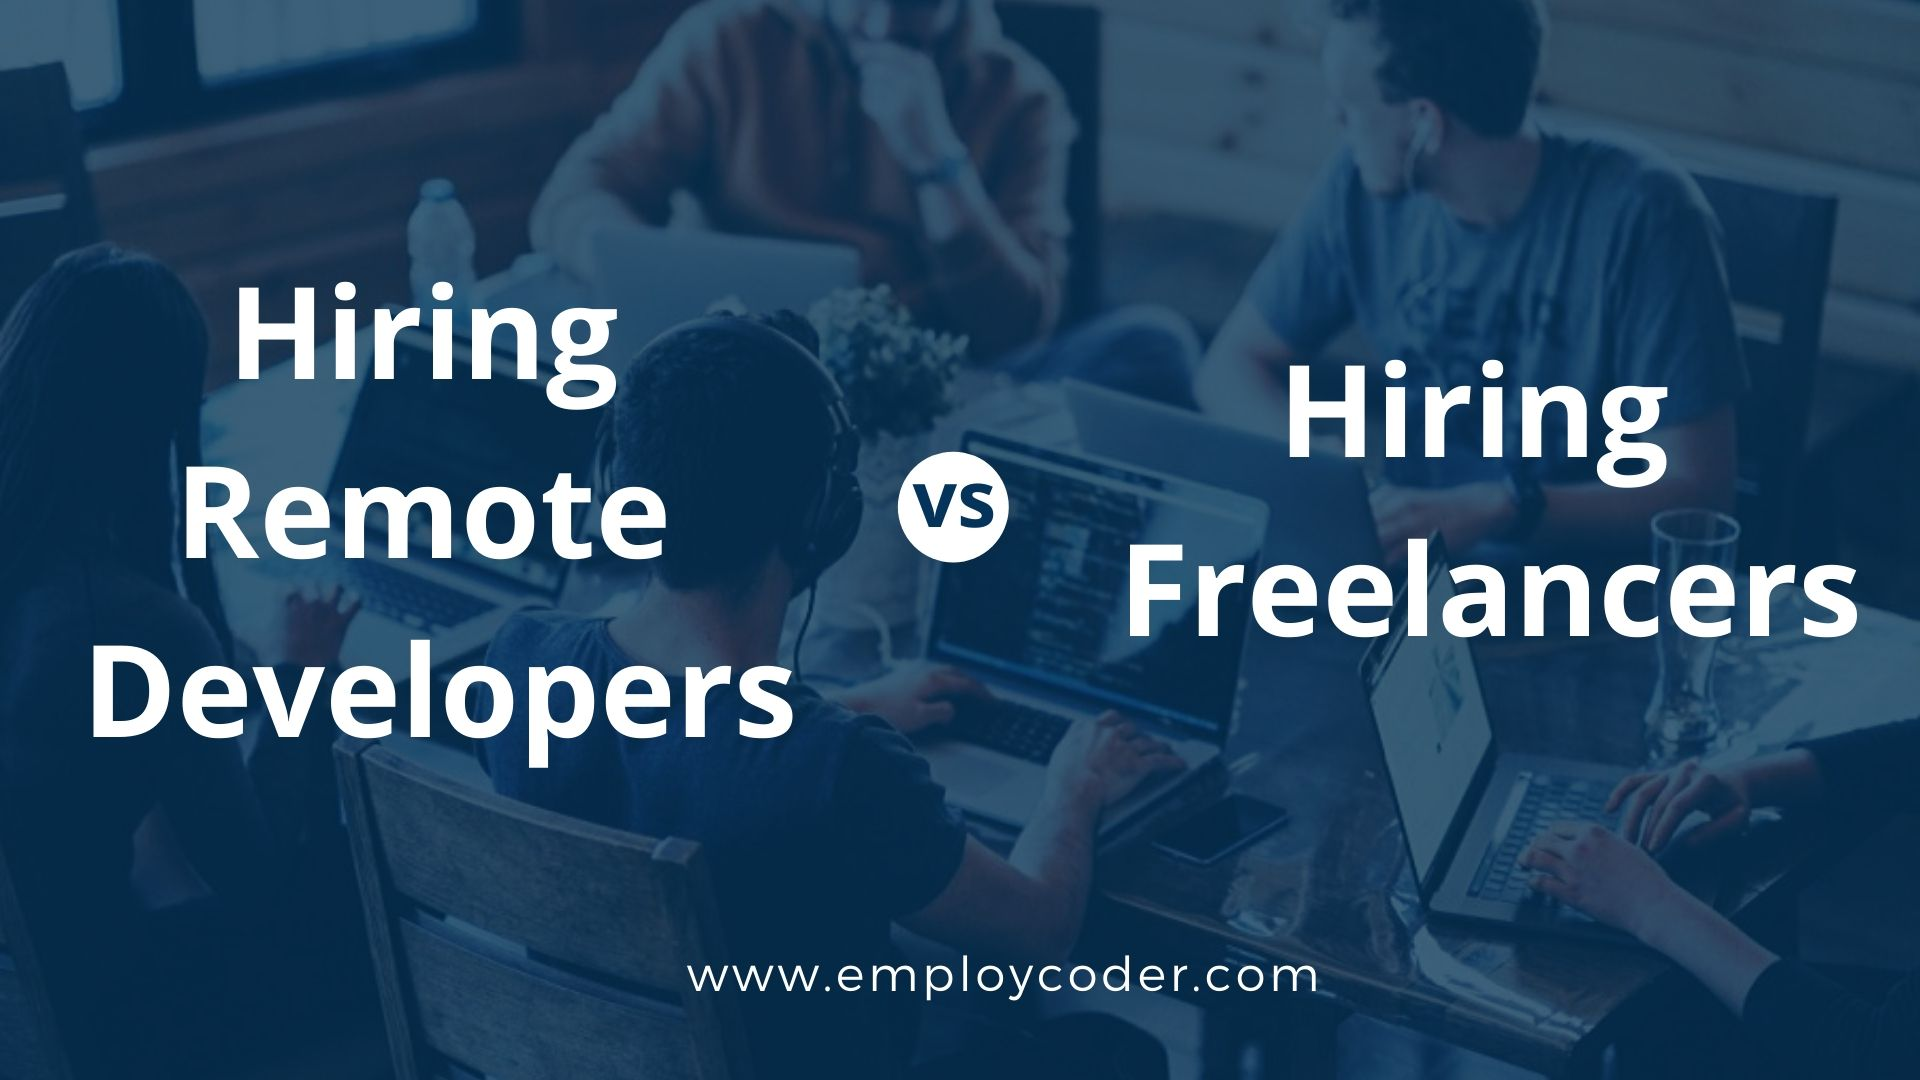 Hiring Remote Developers vs Hiring Freelancers